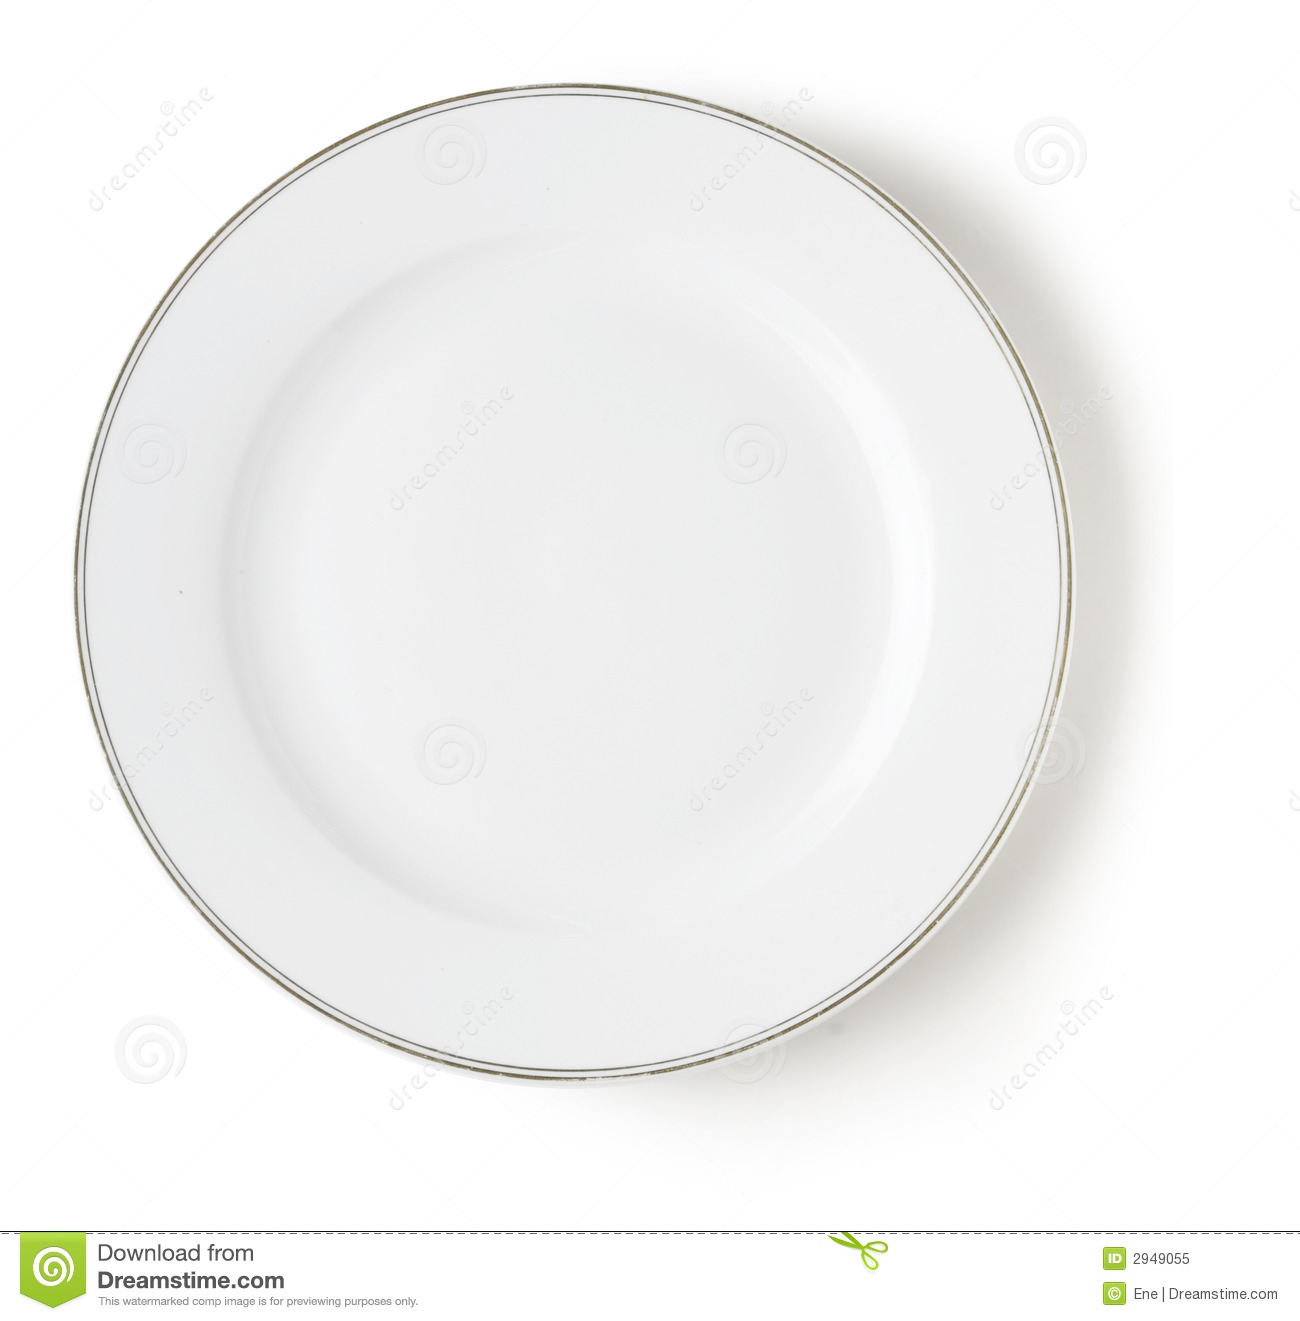 Blank and empty white dish over white with shadow and clipping path.